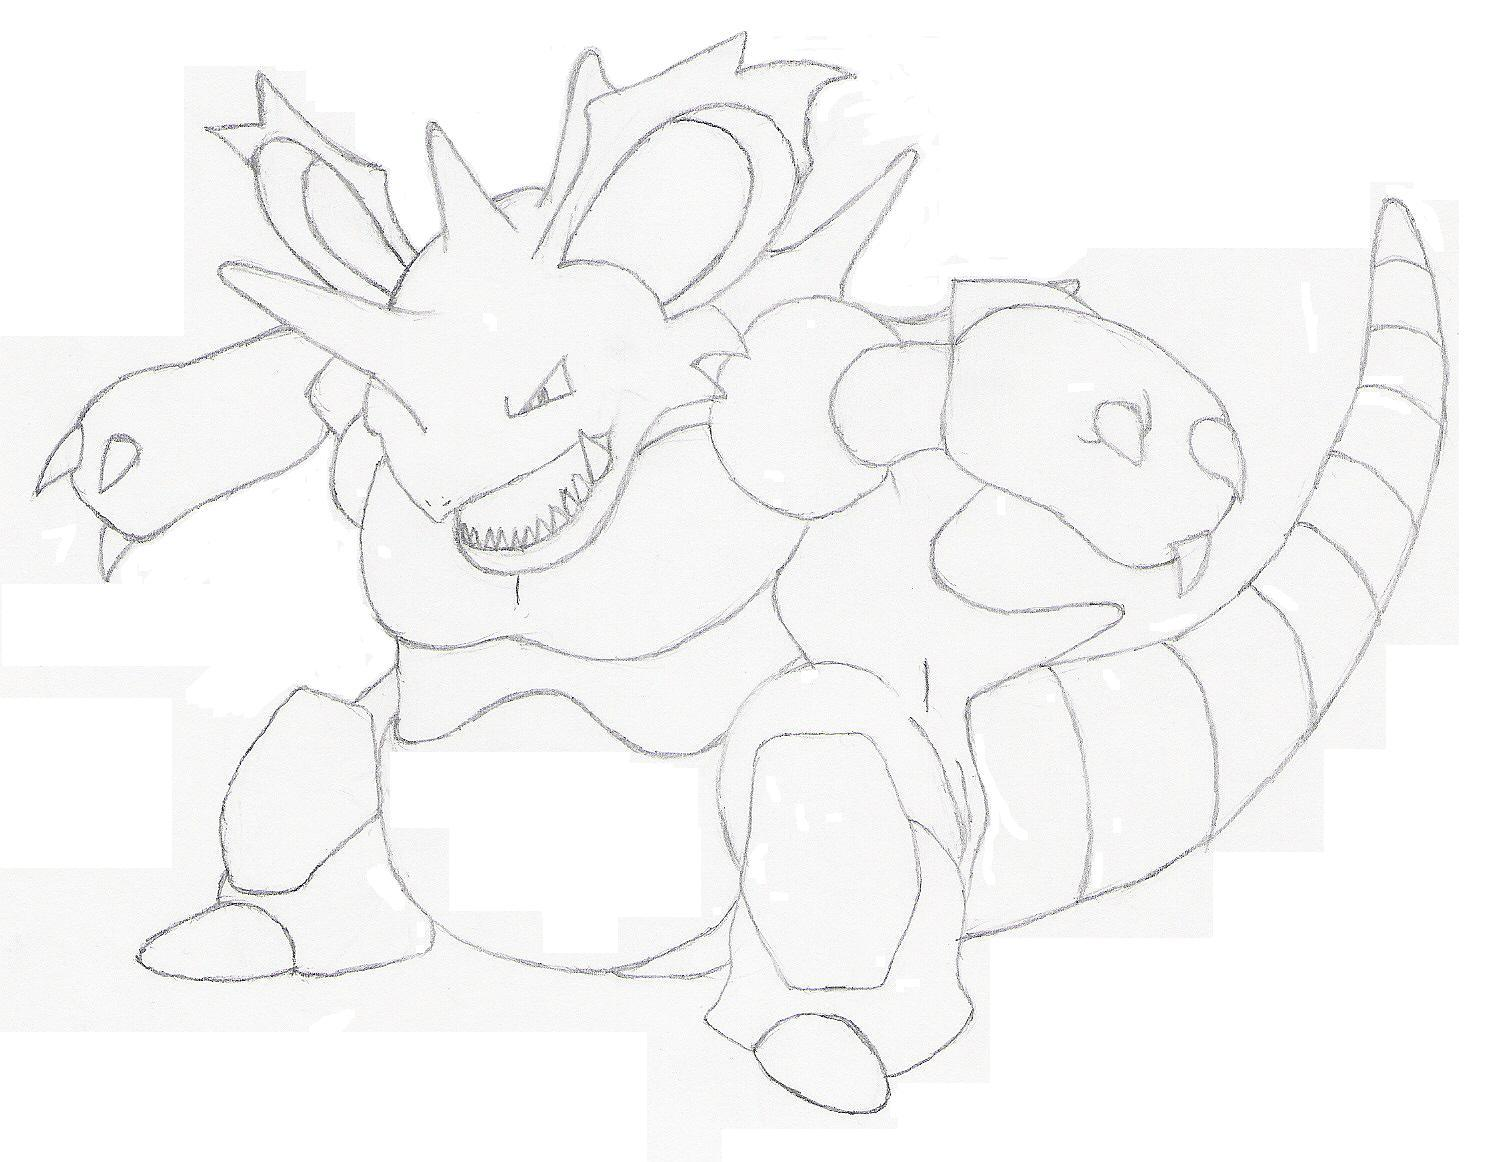 Nidoking sketch by Xtreme2252